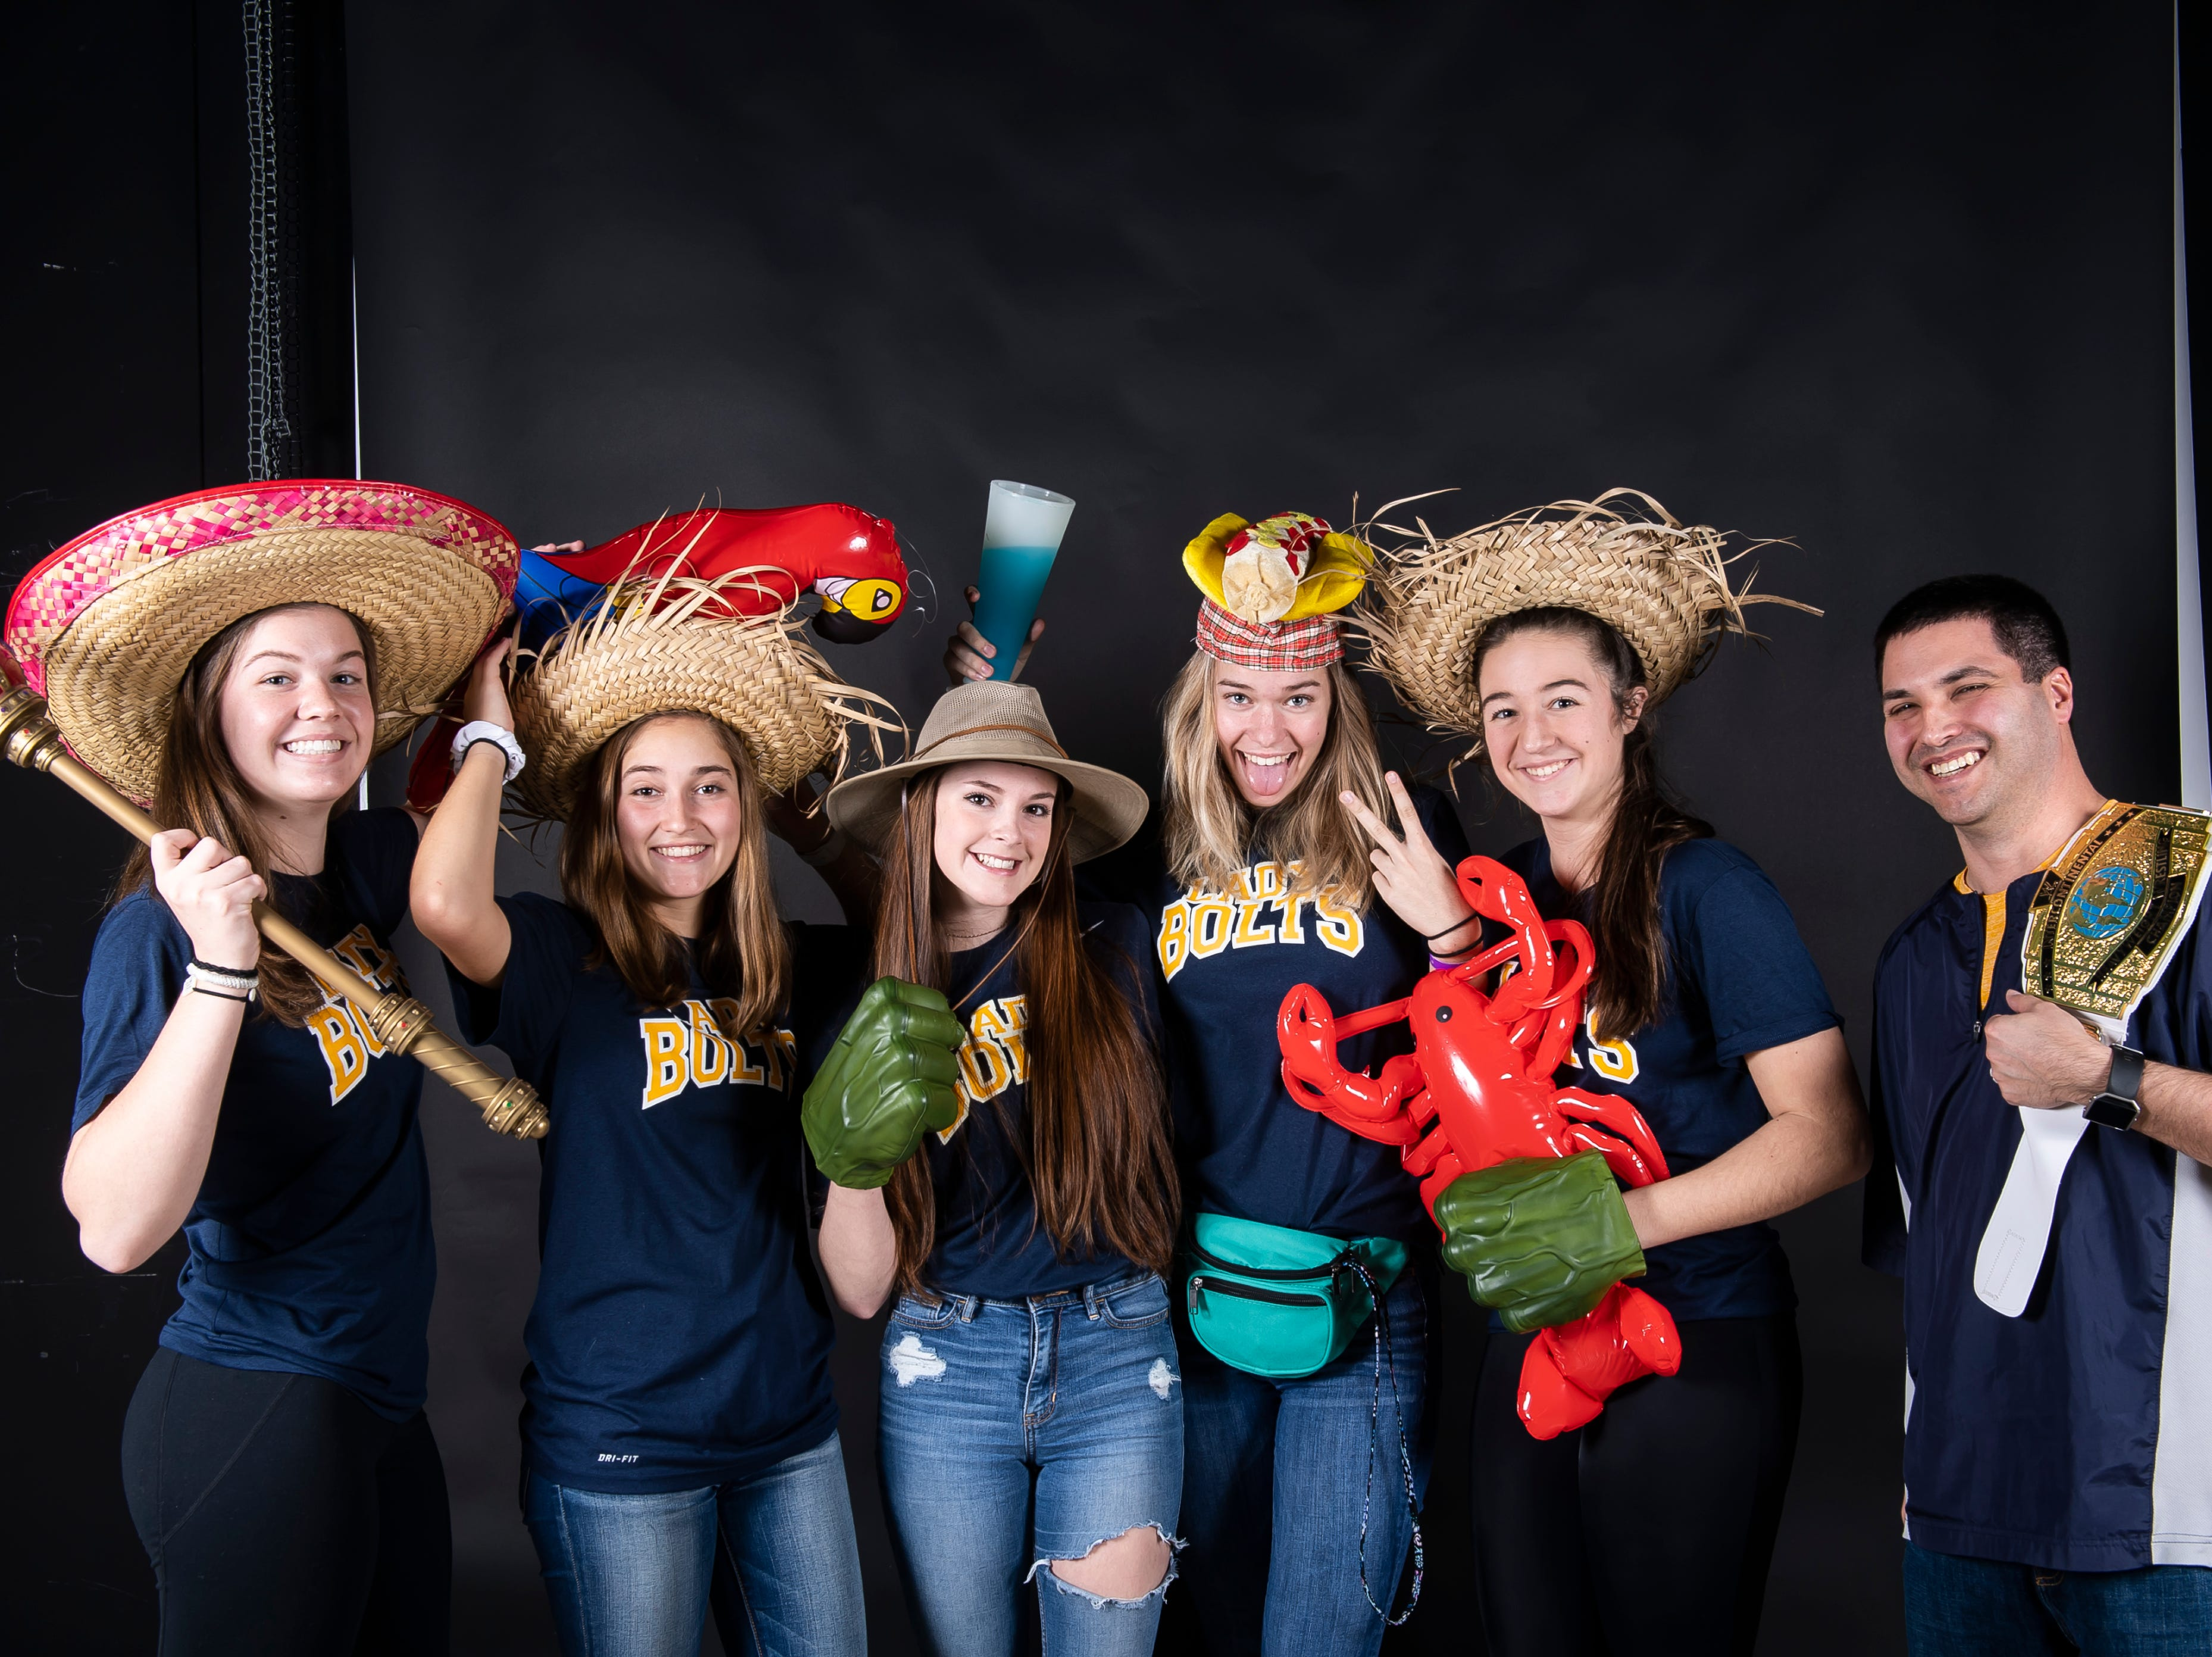 (From left) Littlestown softball players Kacie Frock, Carter Clabaugh, Jada Mummert, Caitlin Eader and Amaya Bowman strike a pose with coach Jeff Laux in the GameTimePA photo booth during spring sports media day in York Sunday, March 10, 2019.